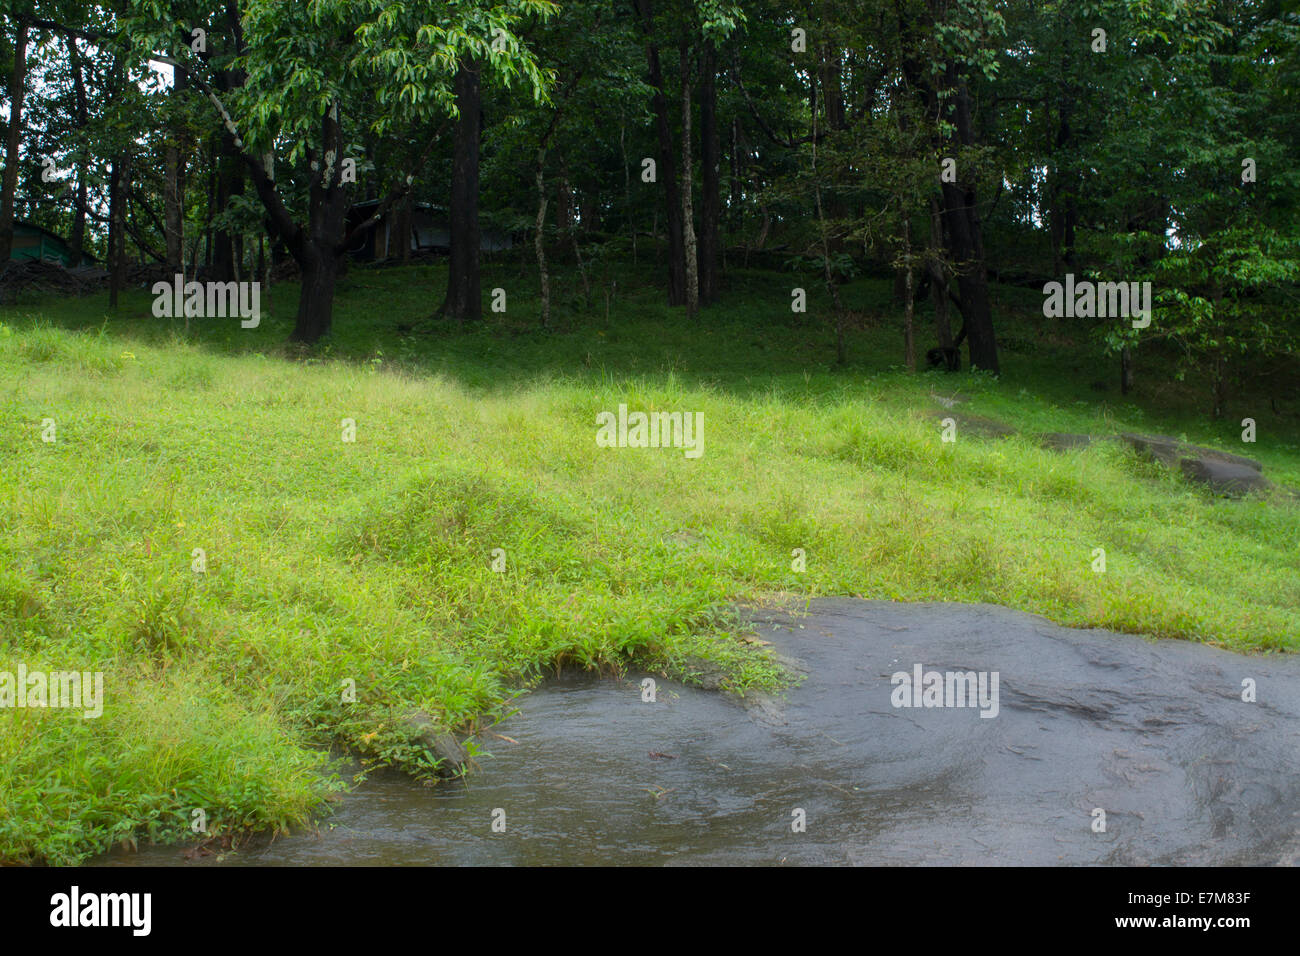 Stock Image - Grass Vally - Stock Image